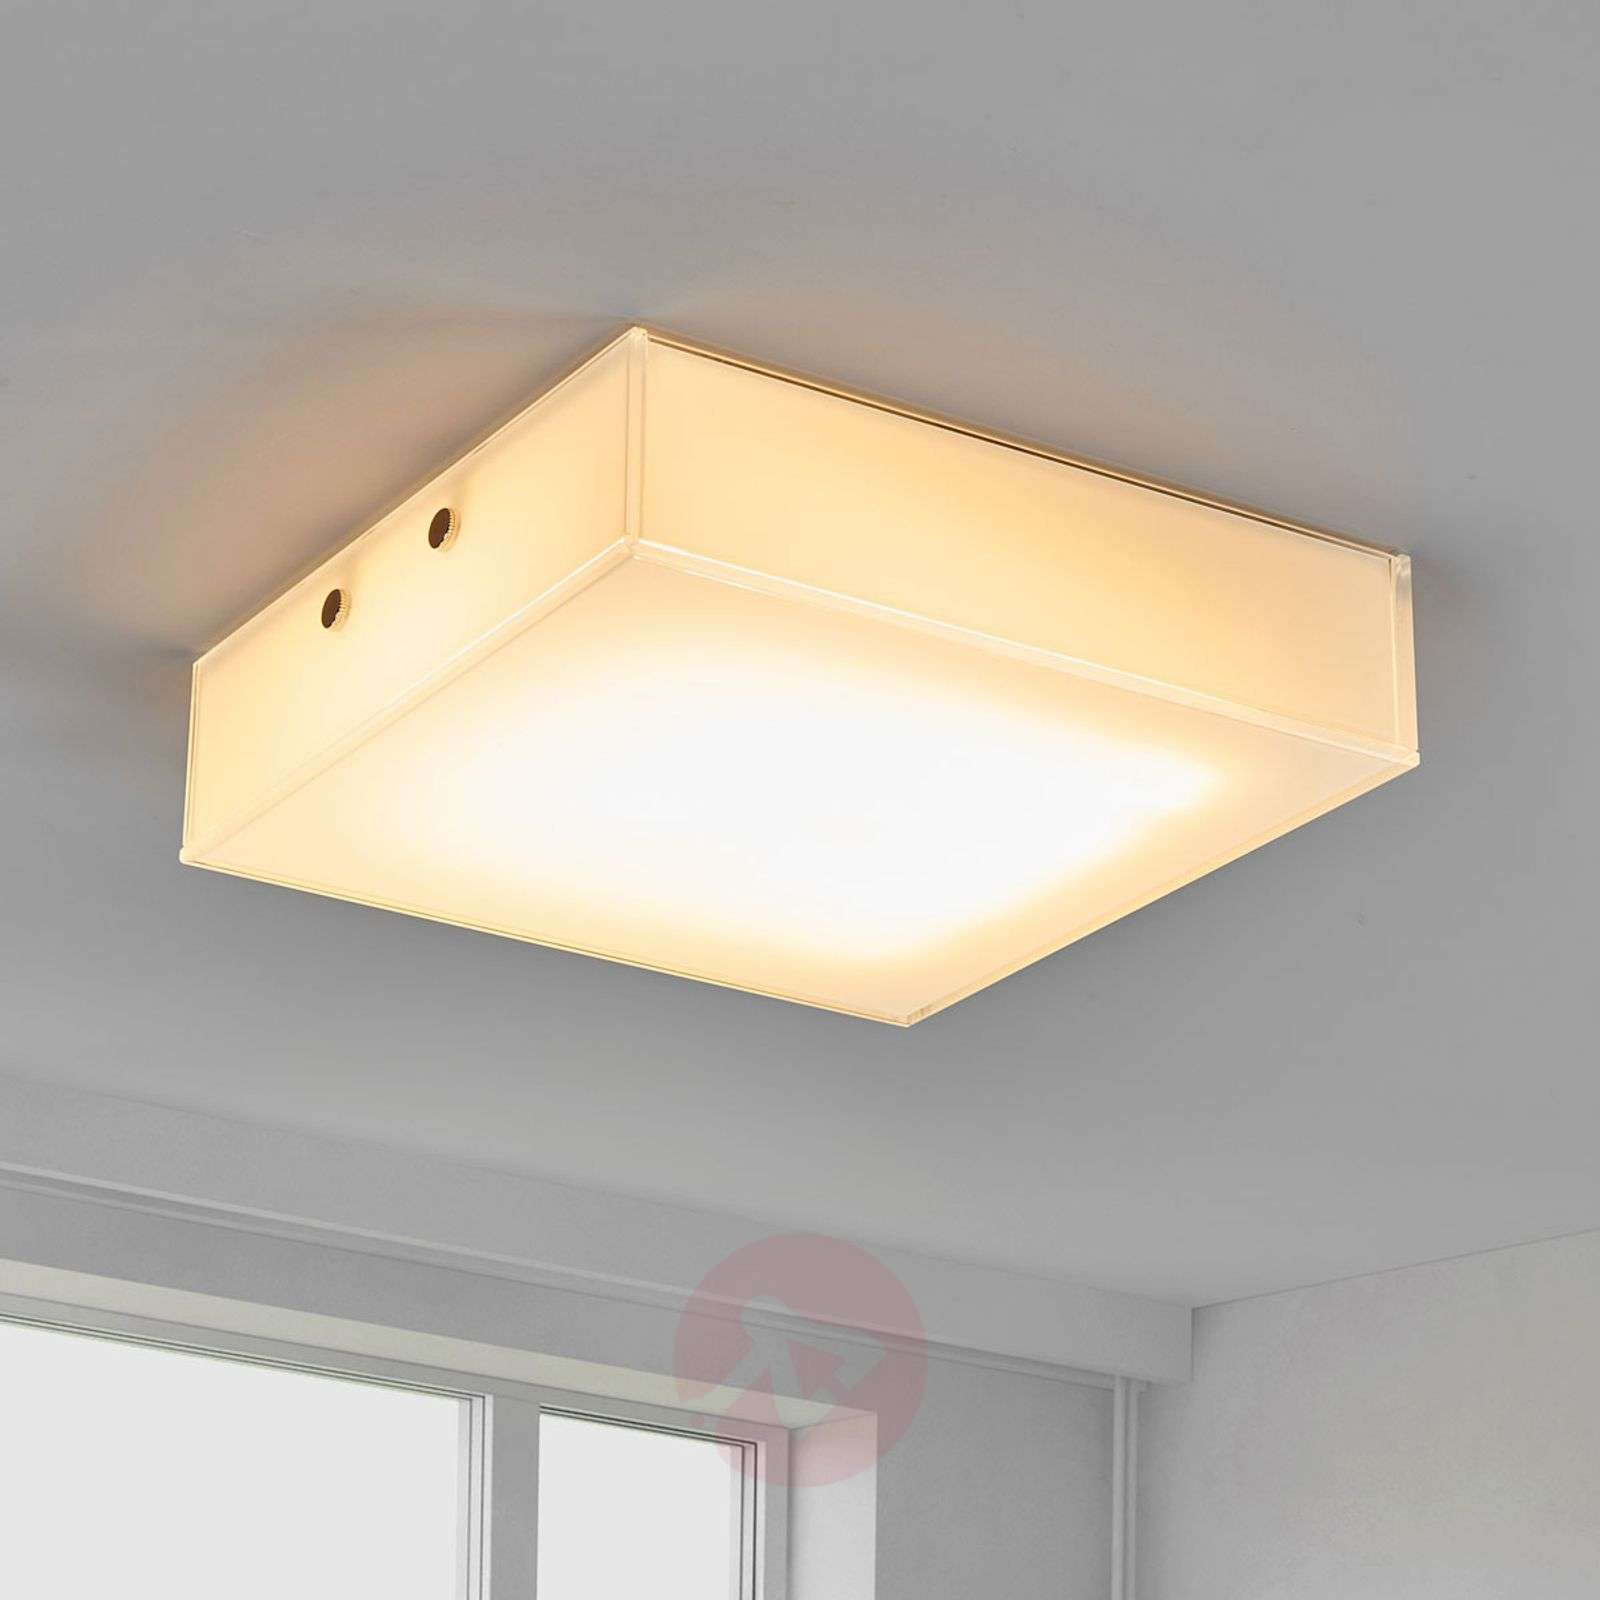 Plafoniera Quadrata Philips : Acquista plafoniera led quadro dal design quadrato lampade